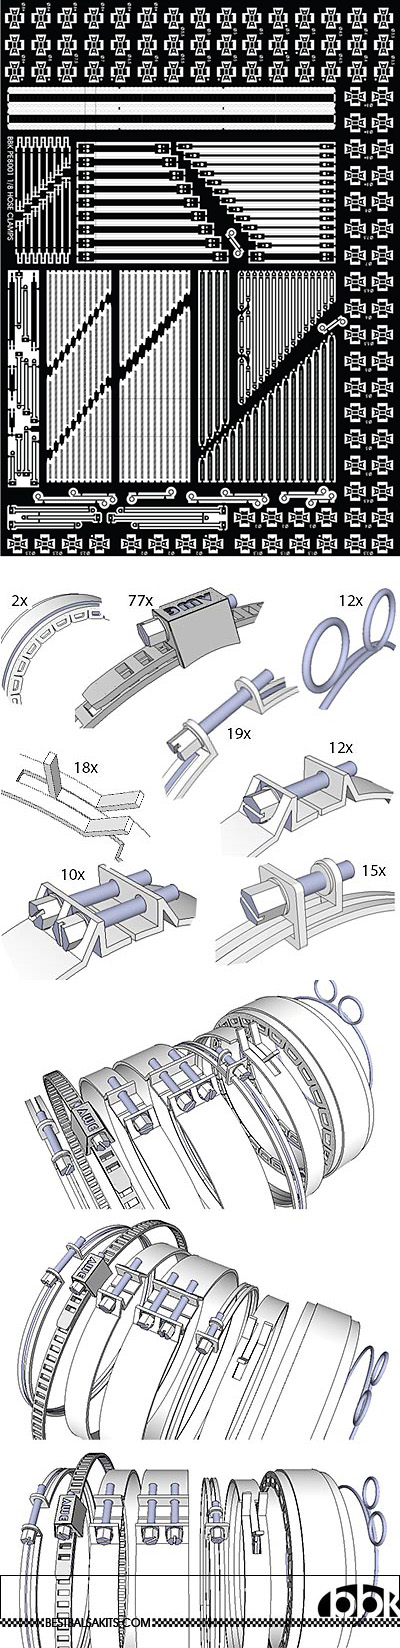 BBK 1/8 HOSE CLAMPS 1/8, 9 DIFFERENT DESIGNS, 150+ CLAMPS